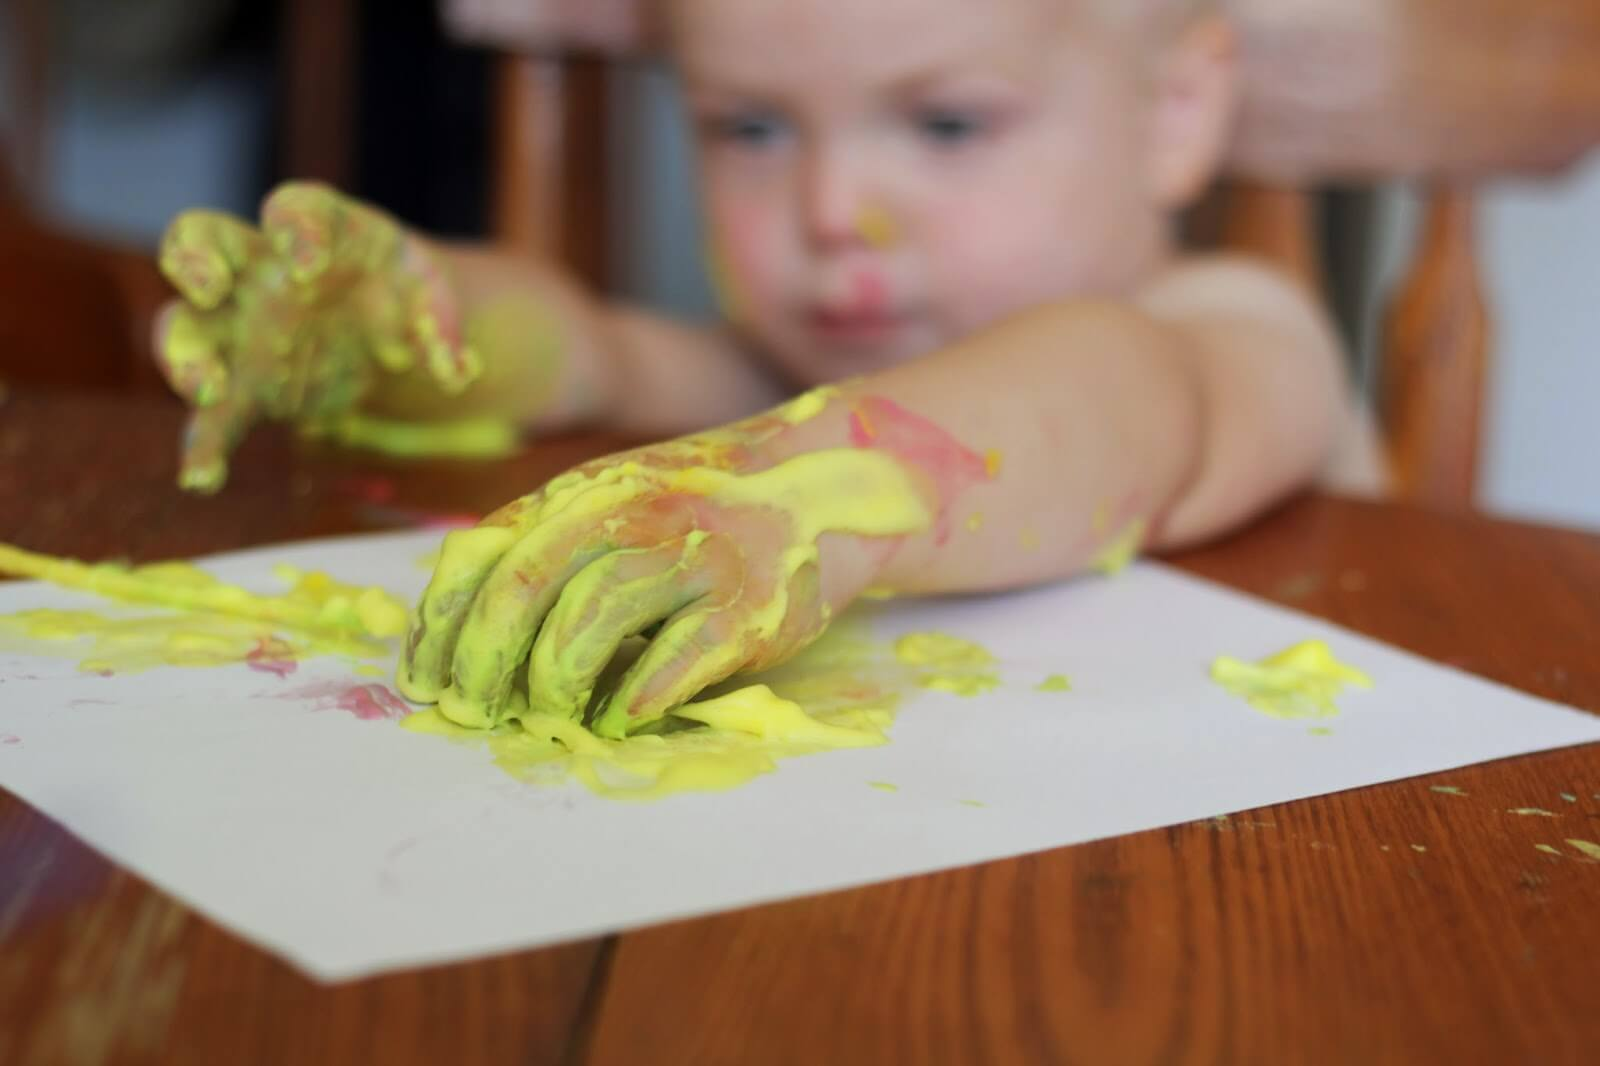 kids paint with fingers